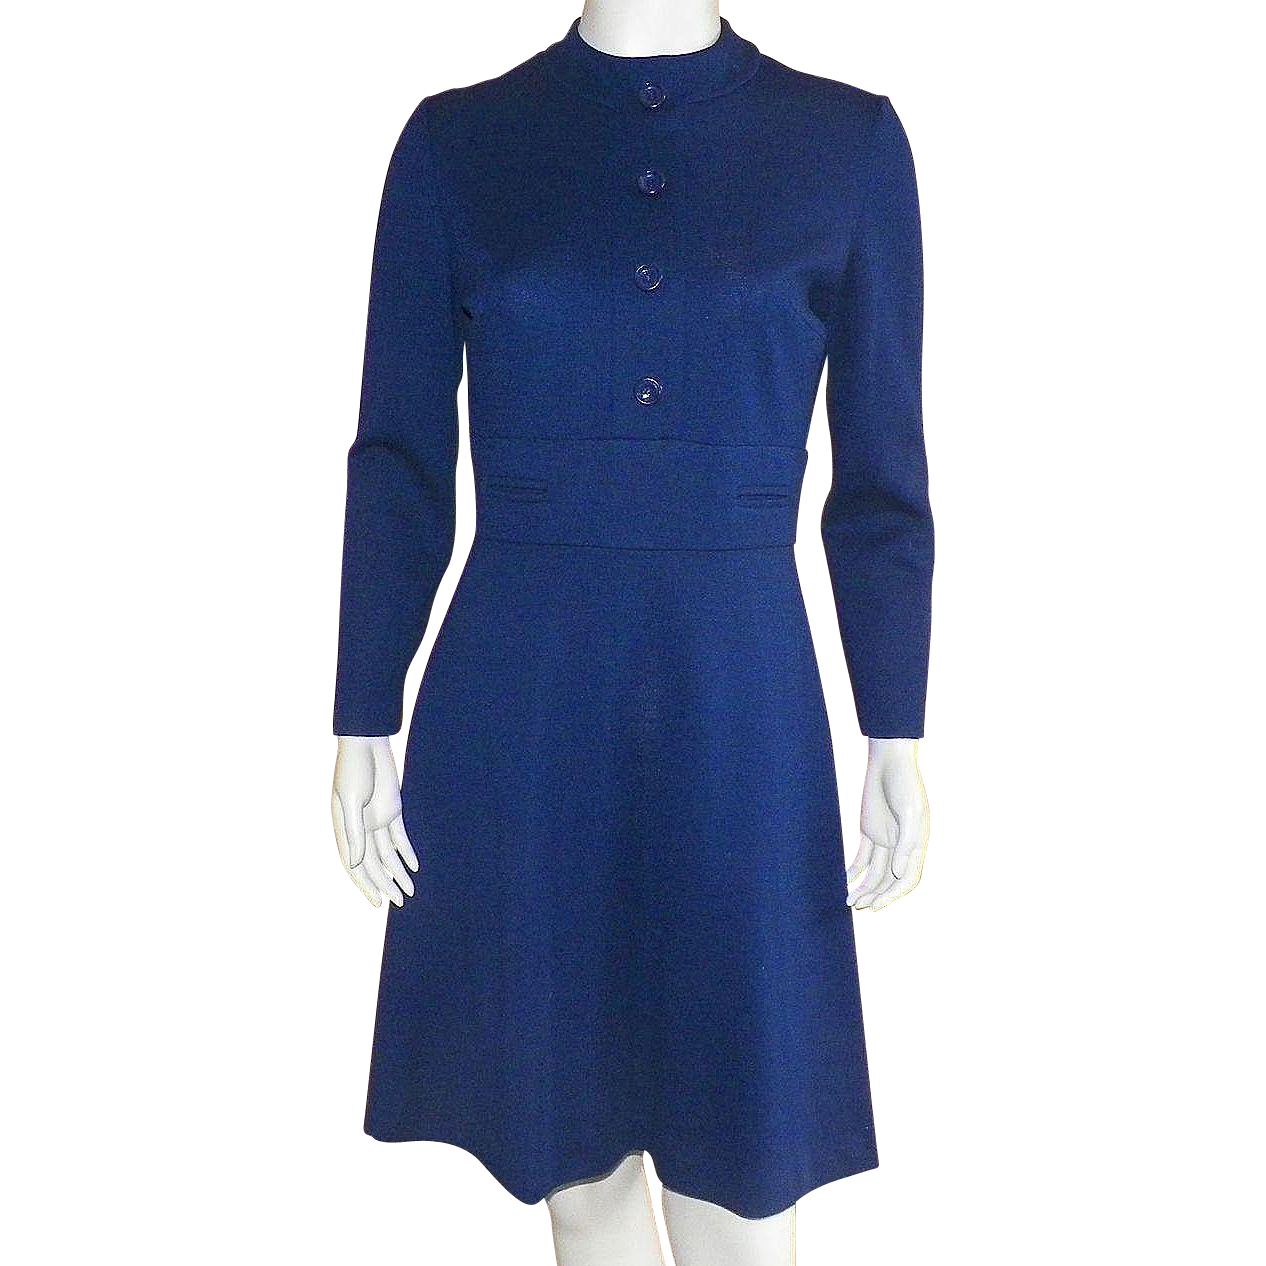 Vintage 1970's Kay Windsor Navy Wool Knit Dress